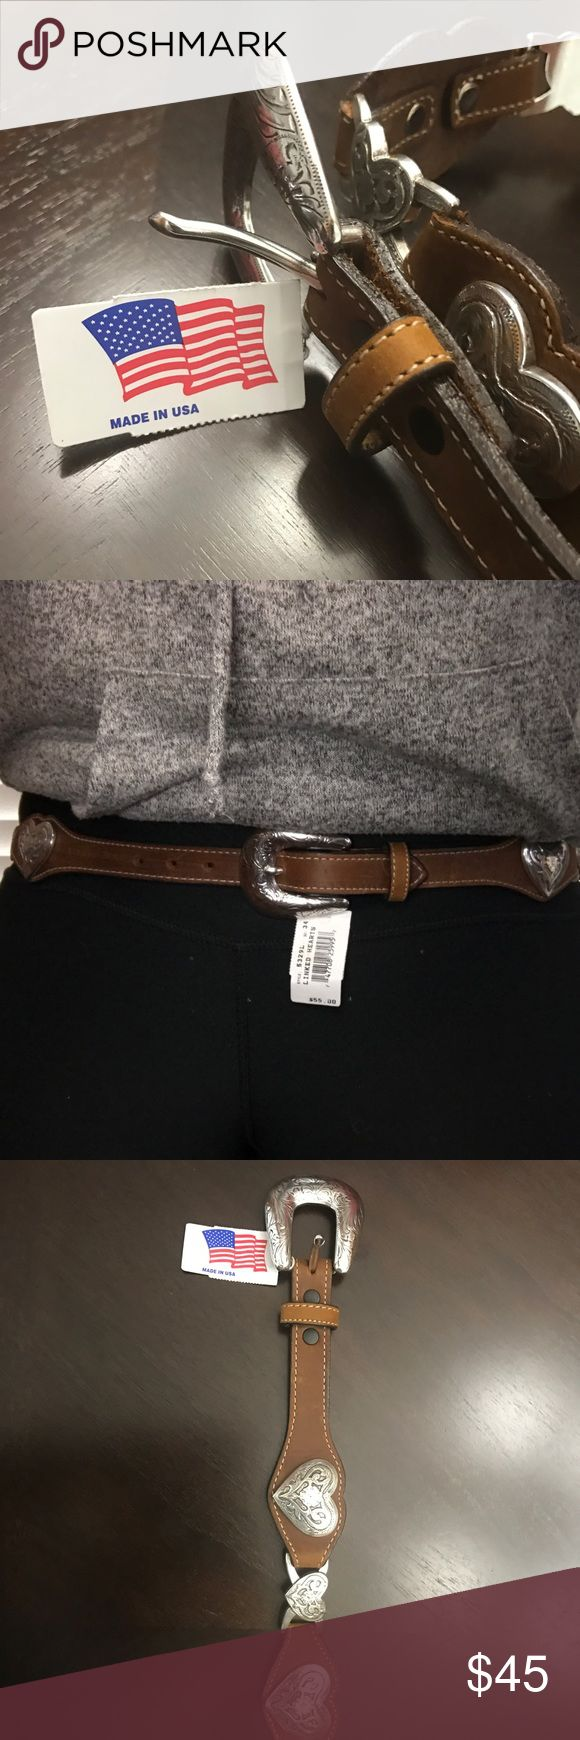 Genuine leather, made in USA, country girl belt Genuine leather, beautifully crafted, country girl belt. Made in America! New with tags, never worn. Accessories Belts